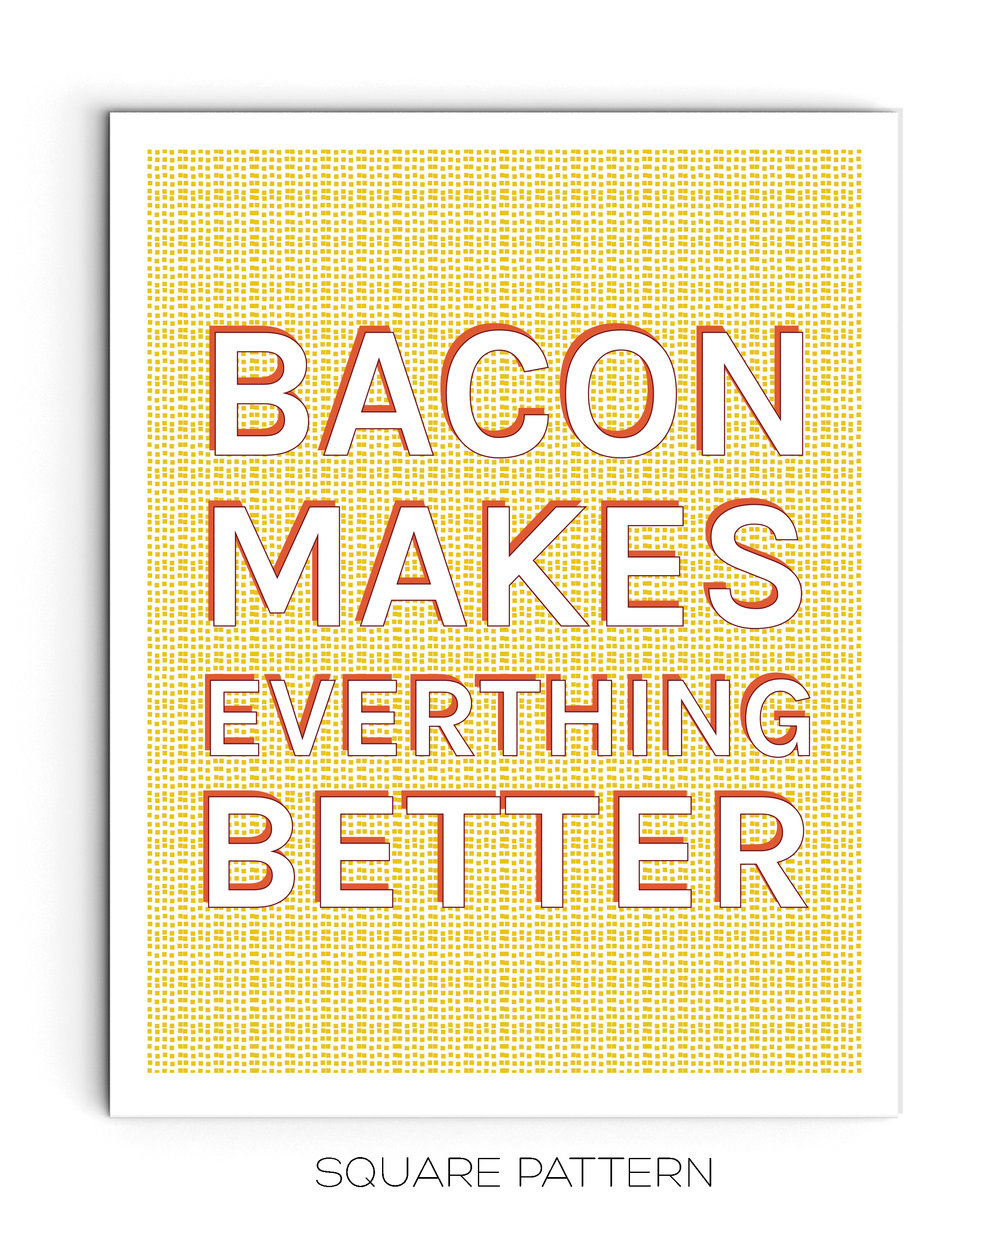 08-drop-shadow-bacon_01-quote-poster-mock-ups.jpg